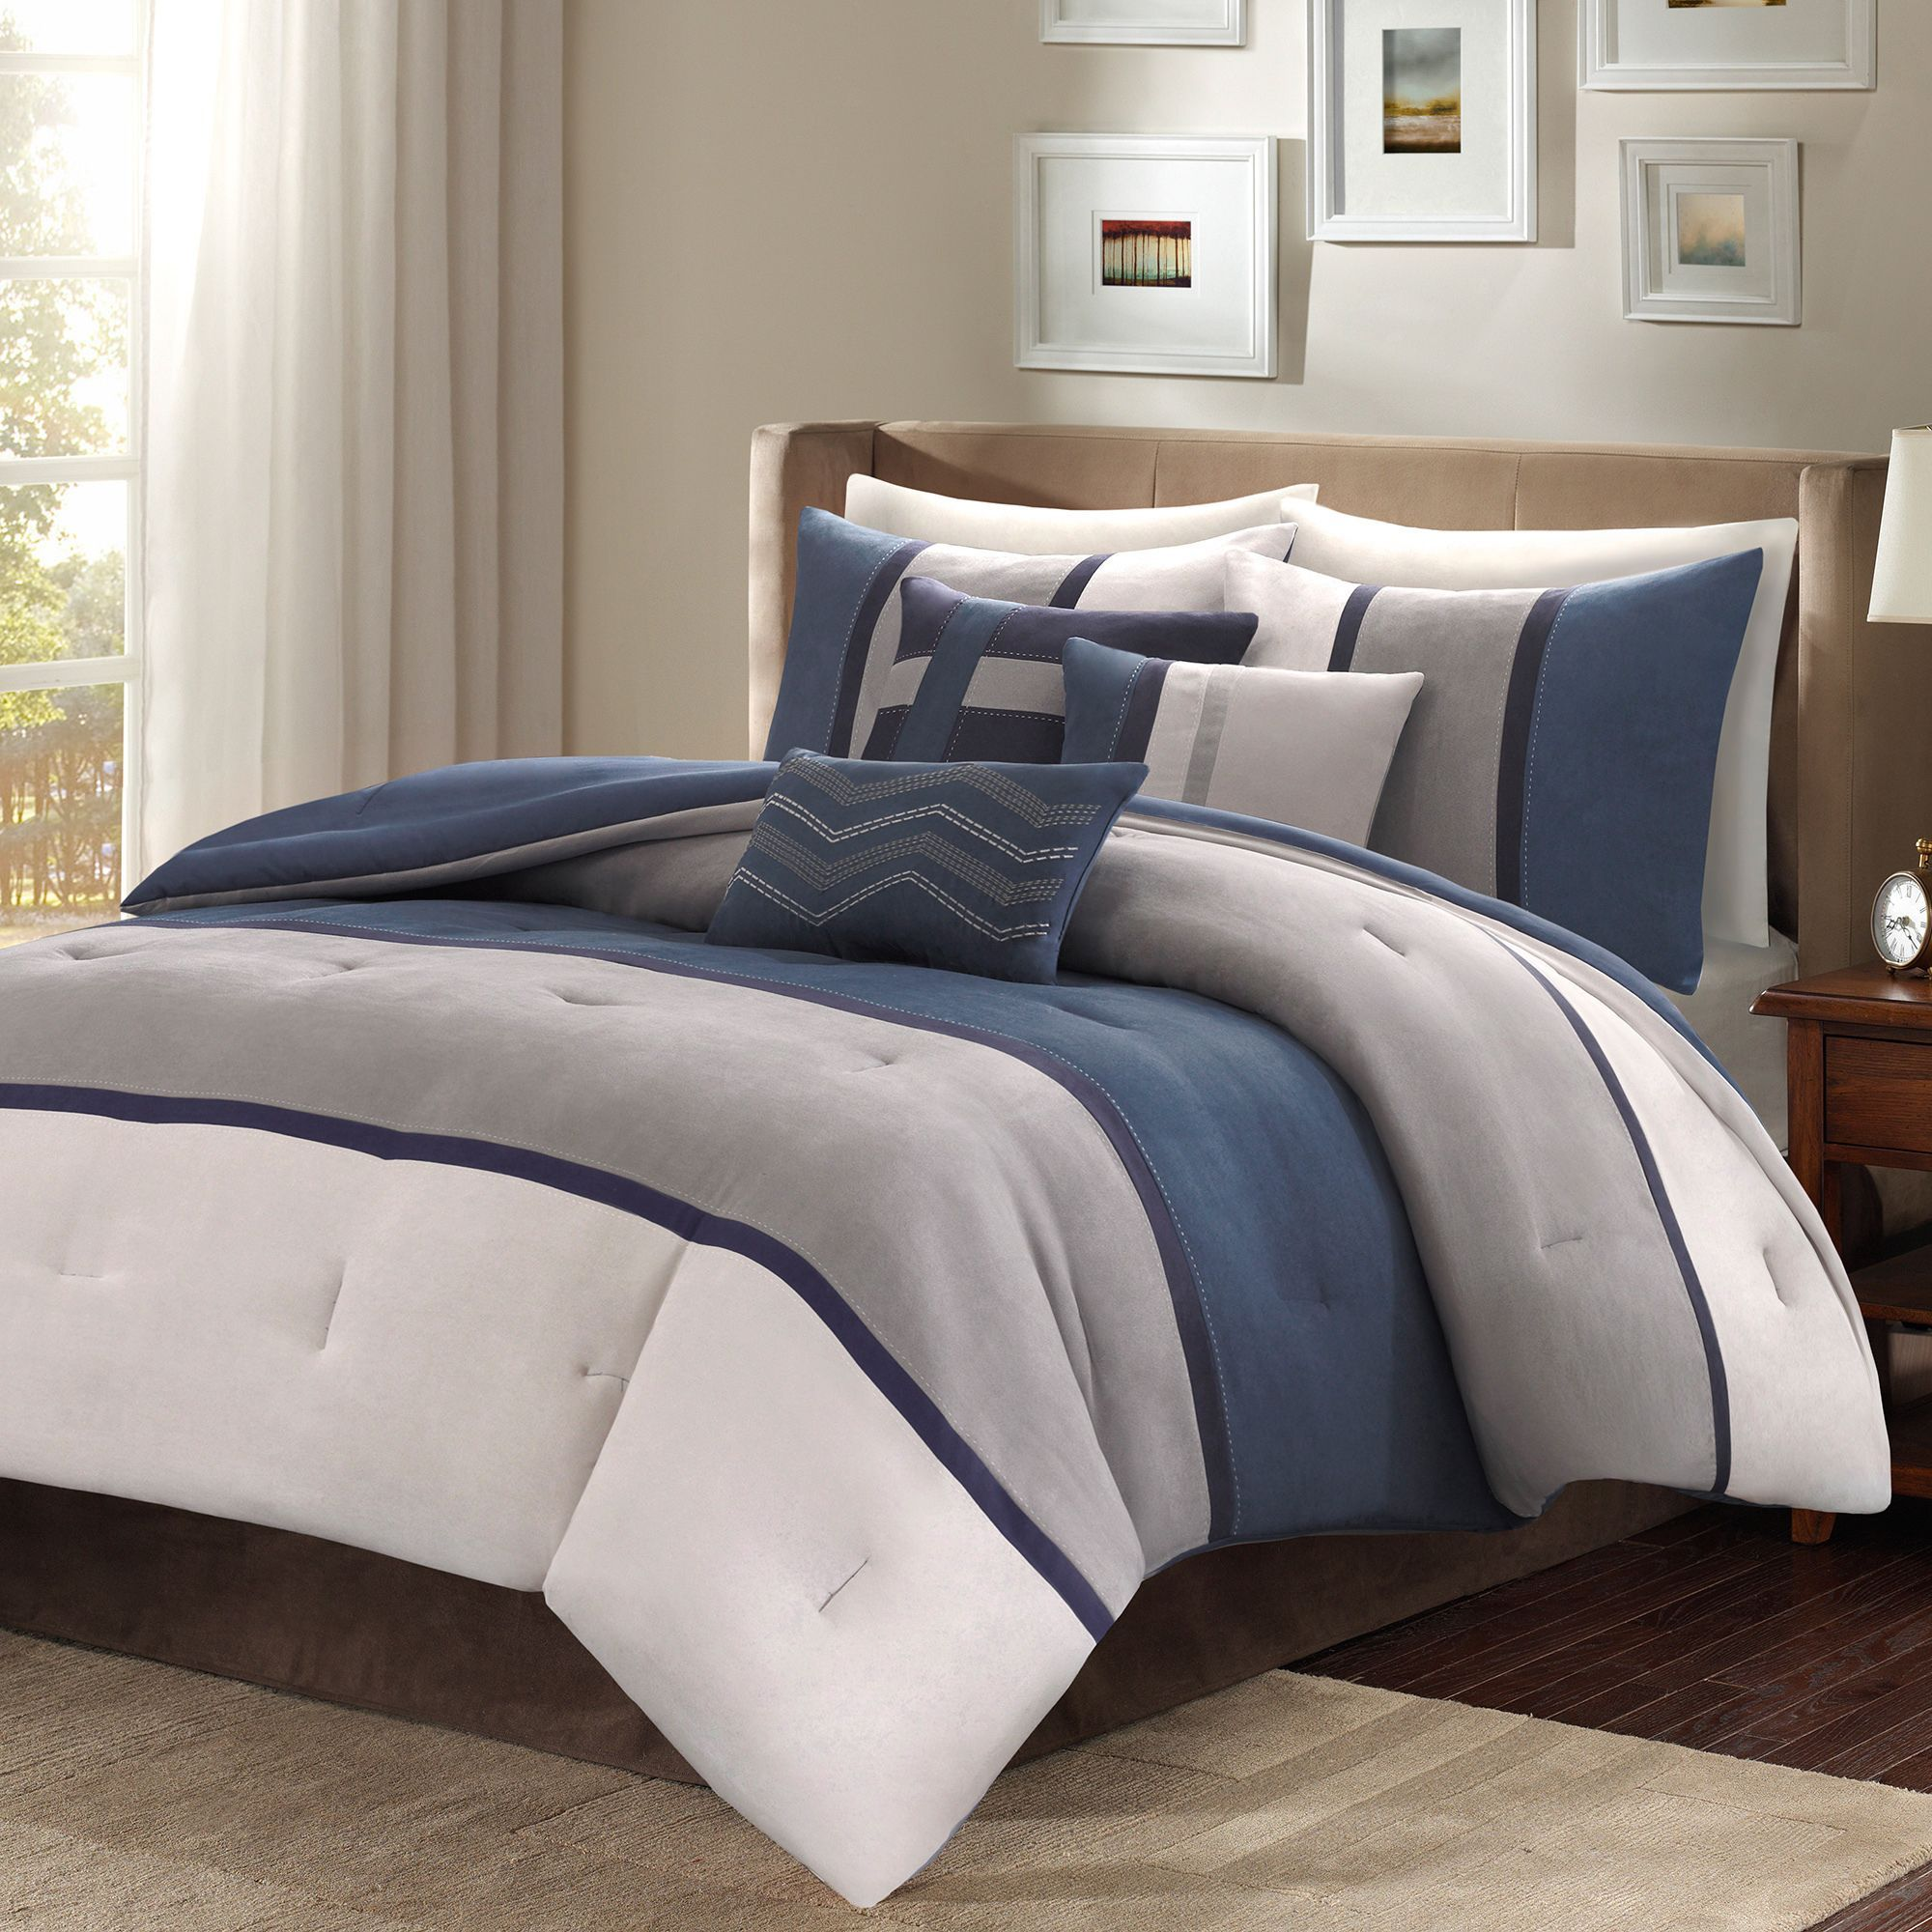 overstock set chic on bank your teen up collection bed the bedroom left wake prices best comforter pin bedding com dress with frankie shopping sophisticated sets